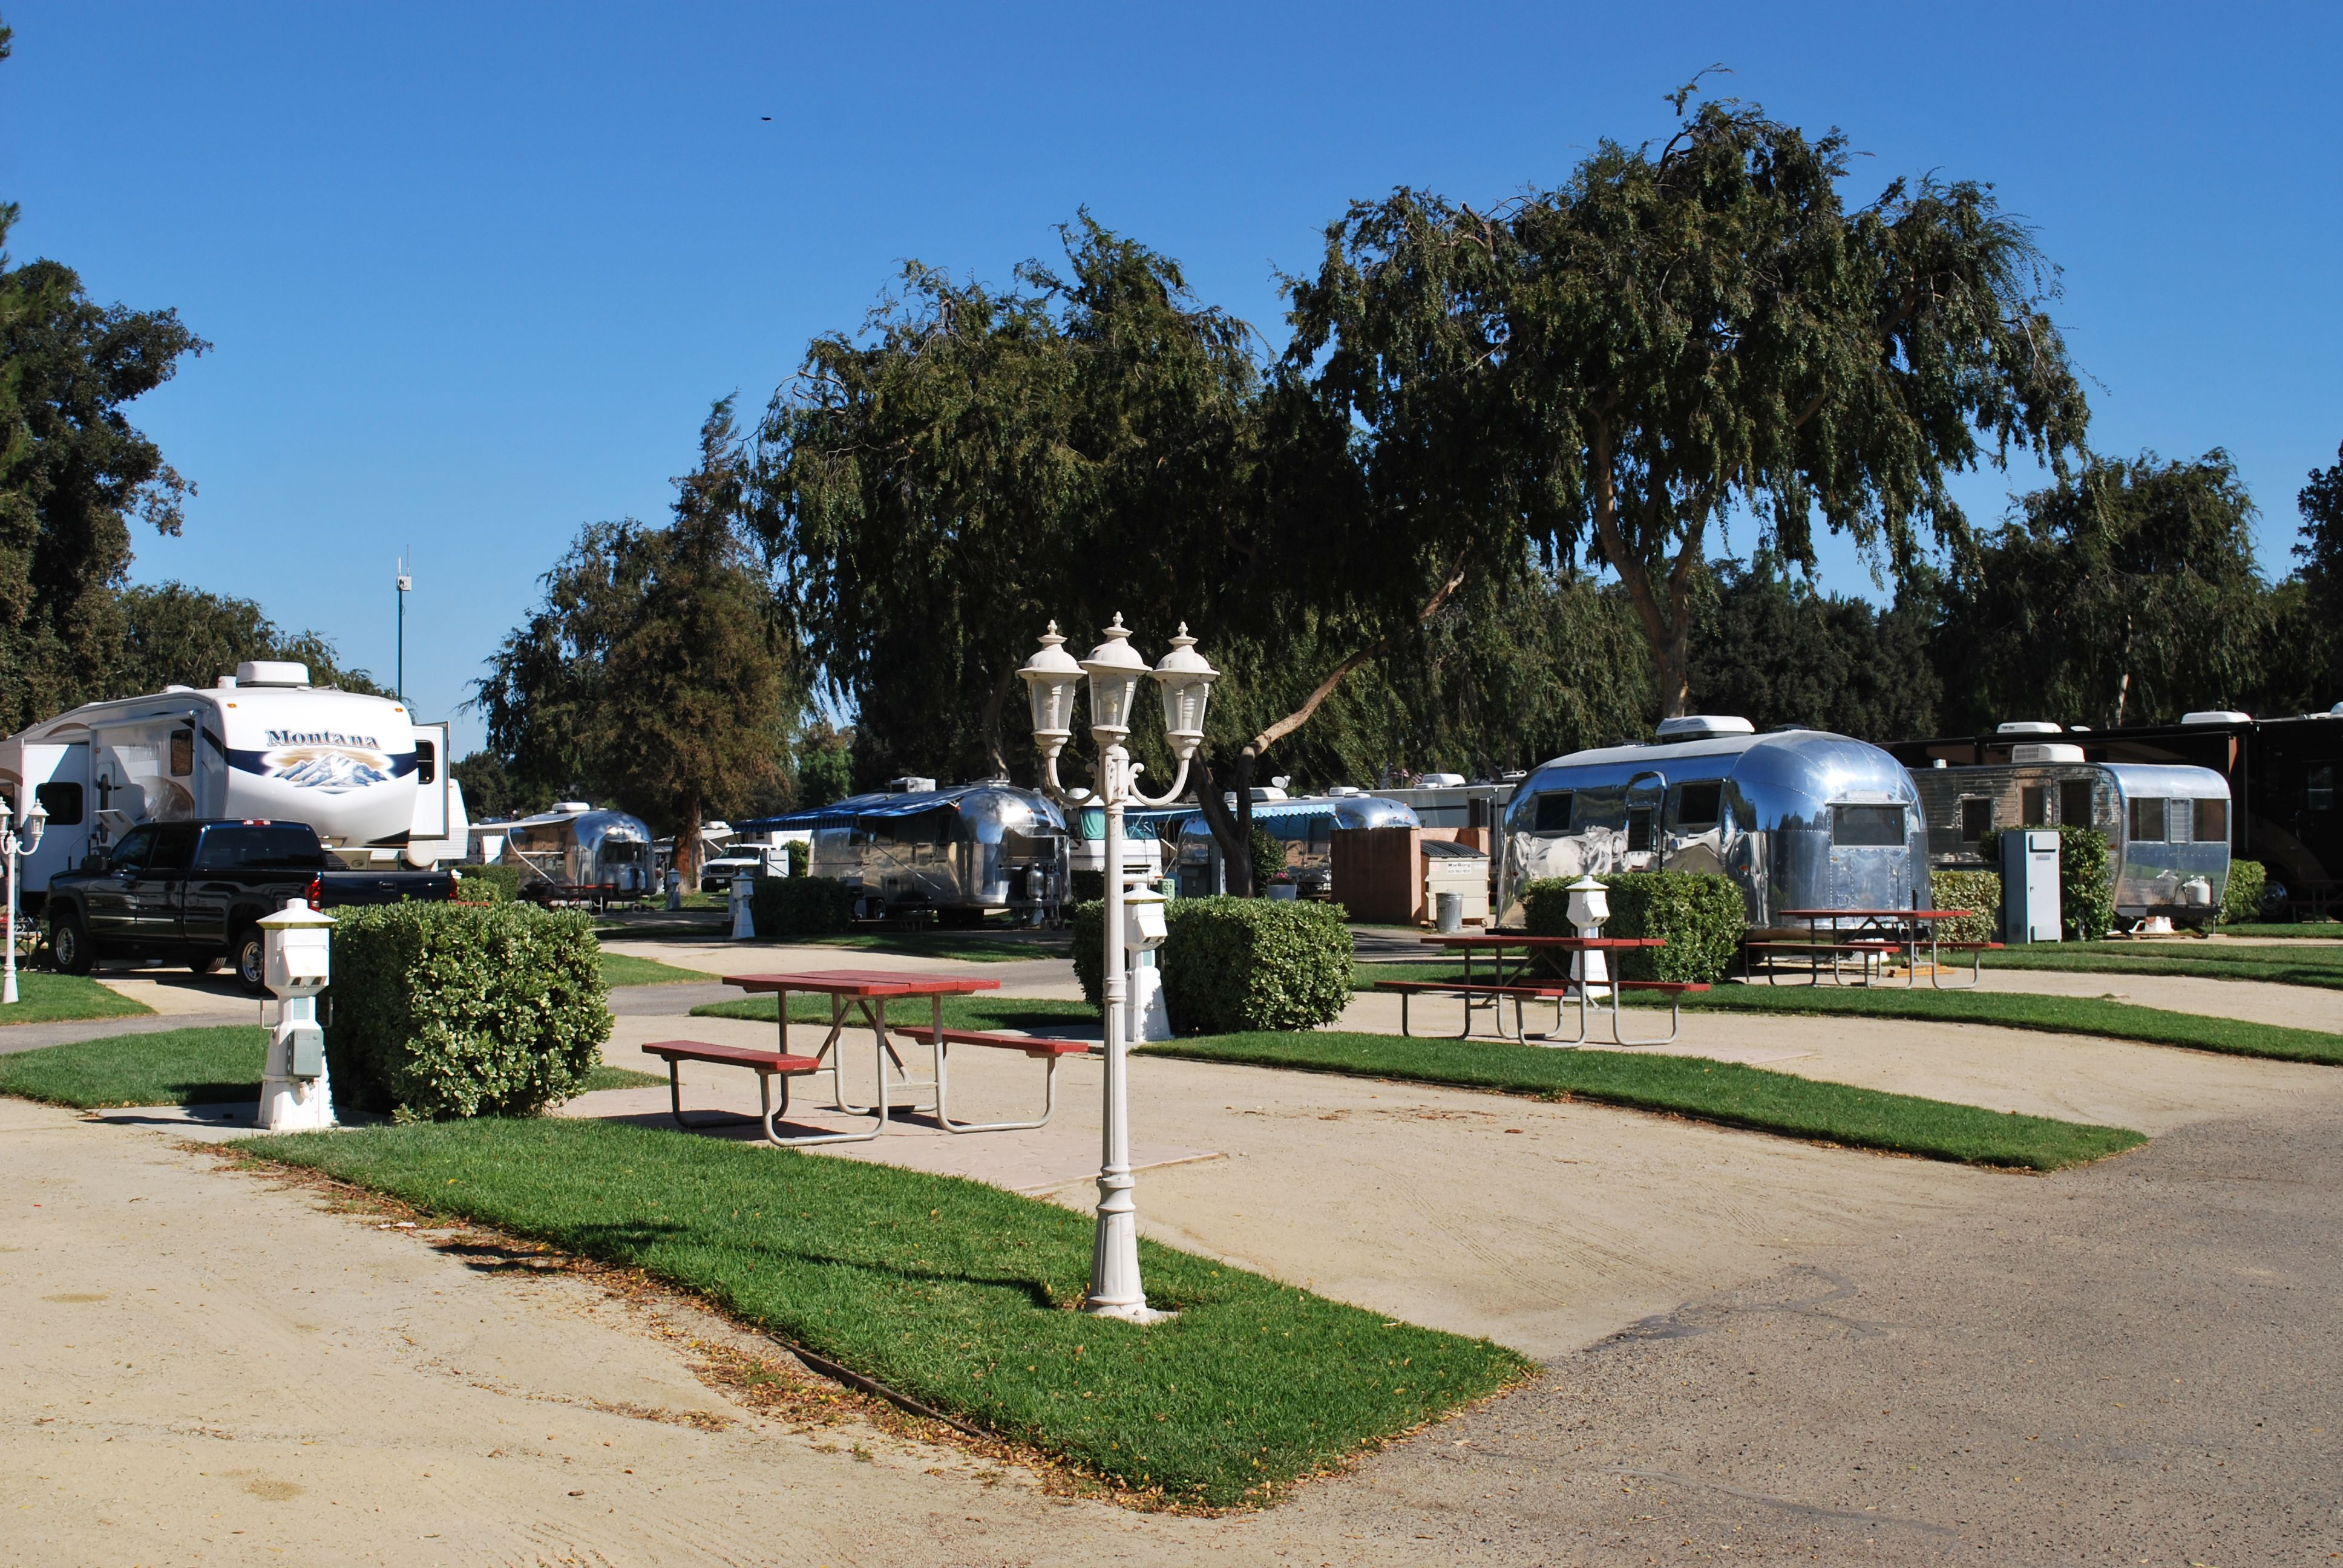 A Fun Place To Camp Near Solvang Calif Is Flying Flyings Rv Resort In Neighboring Buellton The Campground Has Rv And Tent Sites As W Tent Site Places Resort